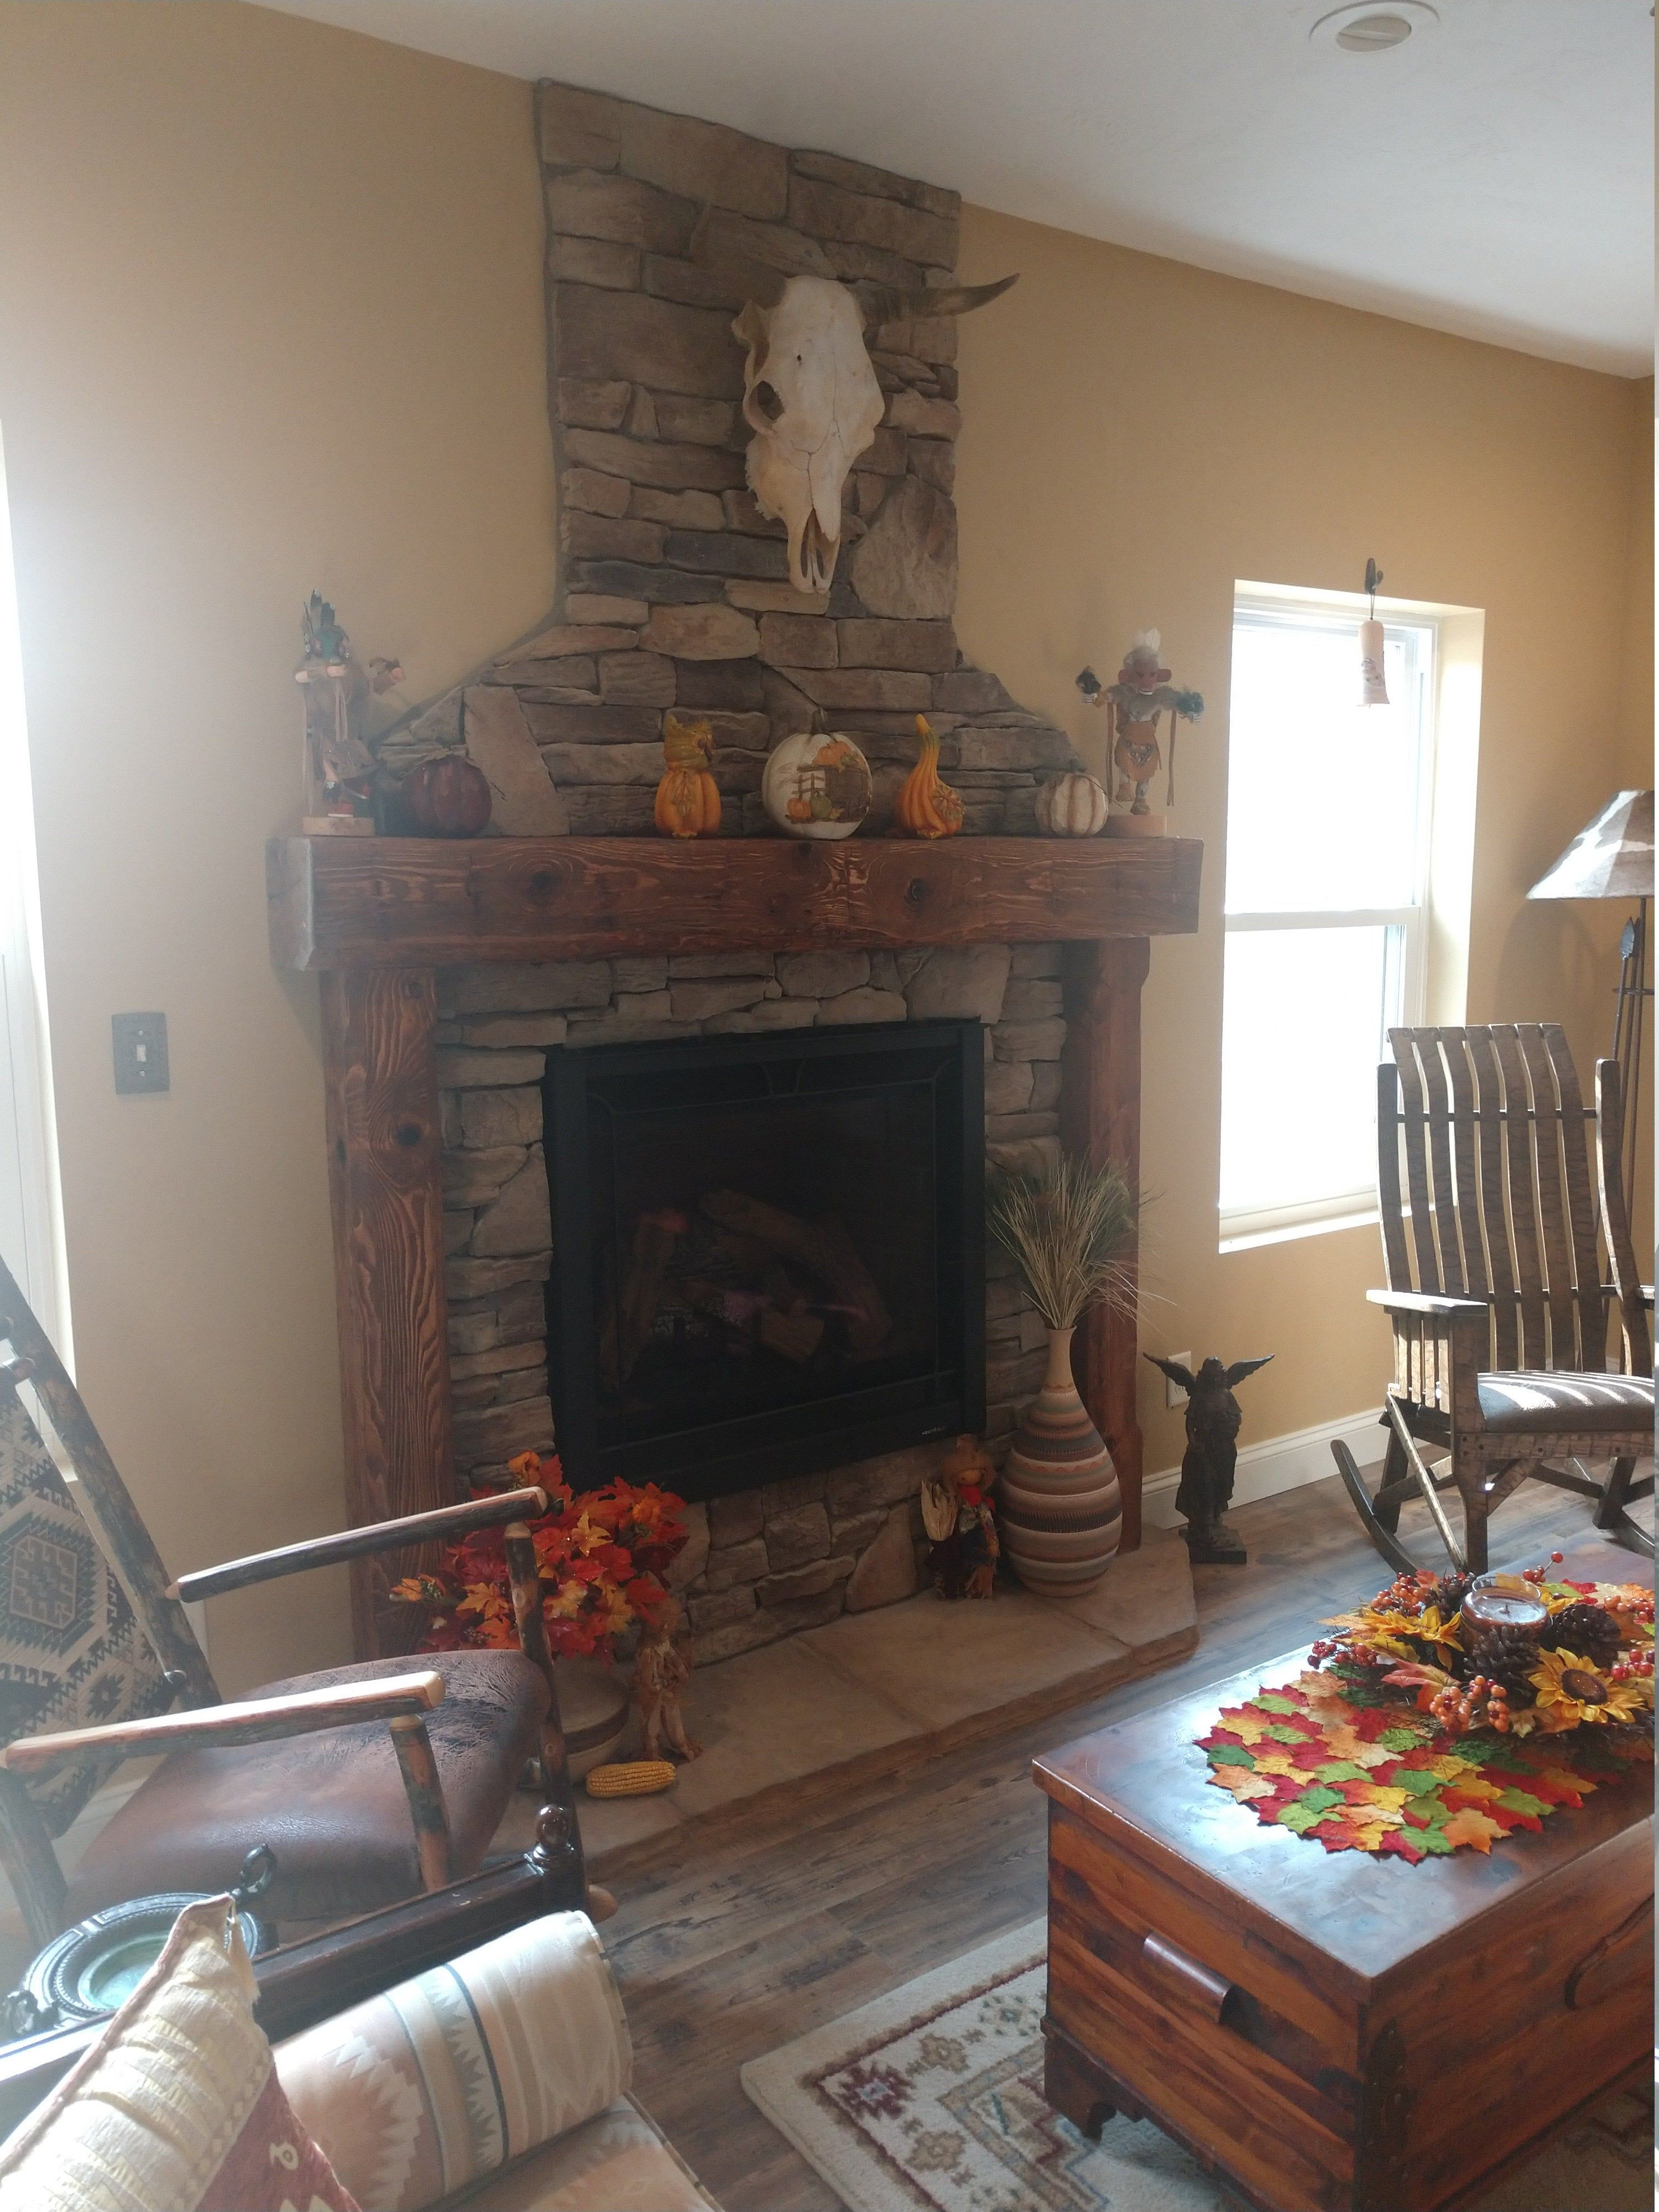 A Beautiful Rustic Spruce Fireplace Mantel With Legs Made From Reclaimed Spruce Wood The Mantel Is From An 8 X 8 Spr In 2019 Fireplace Mantels Wood Beams Wood